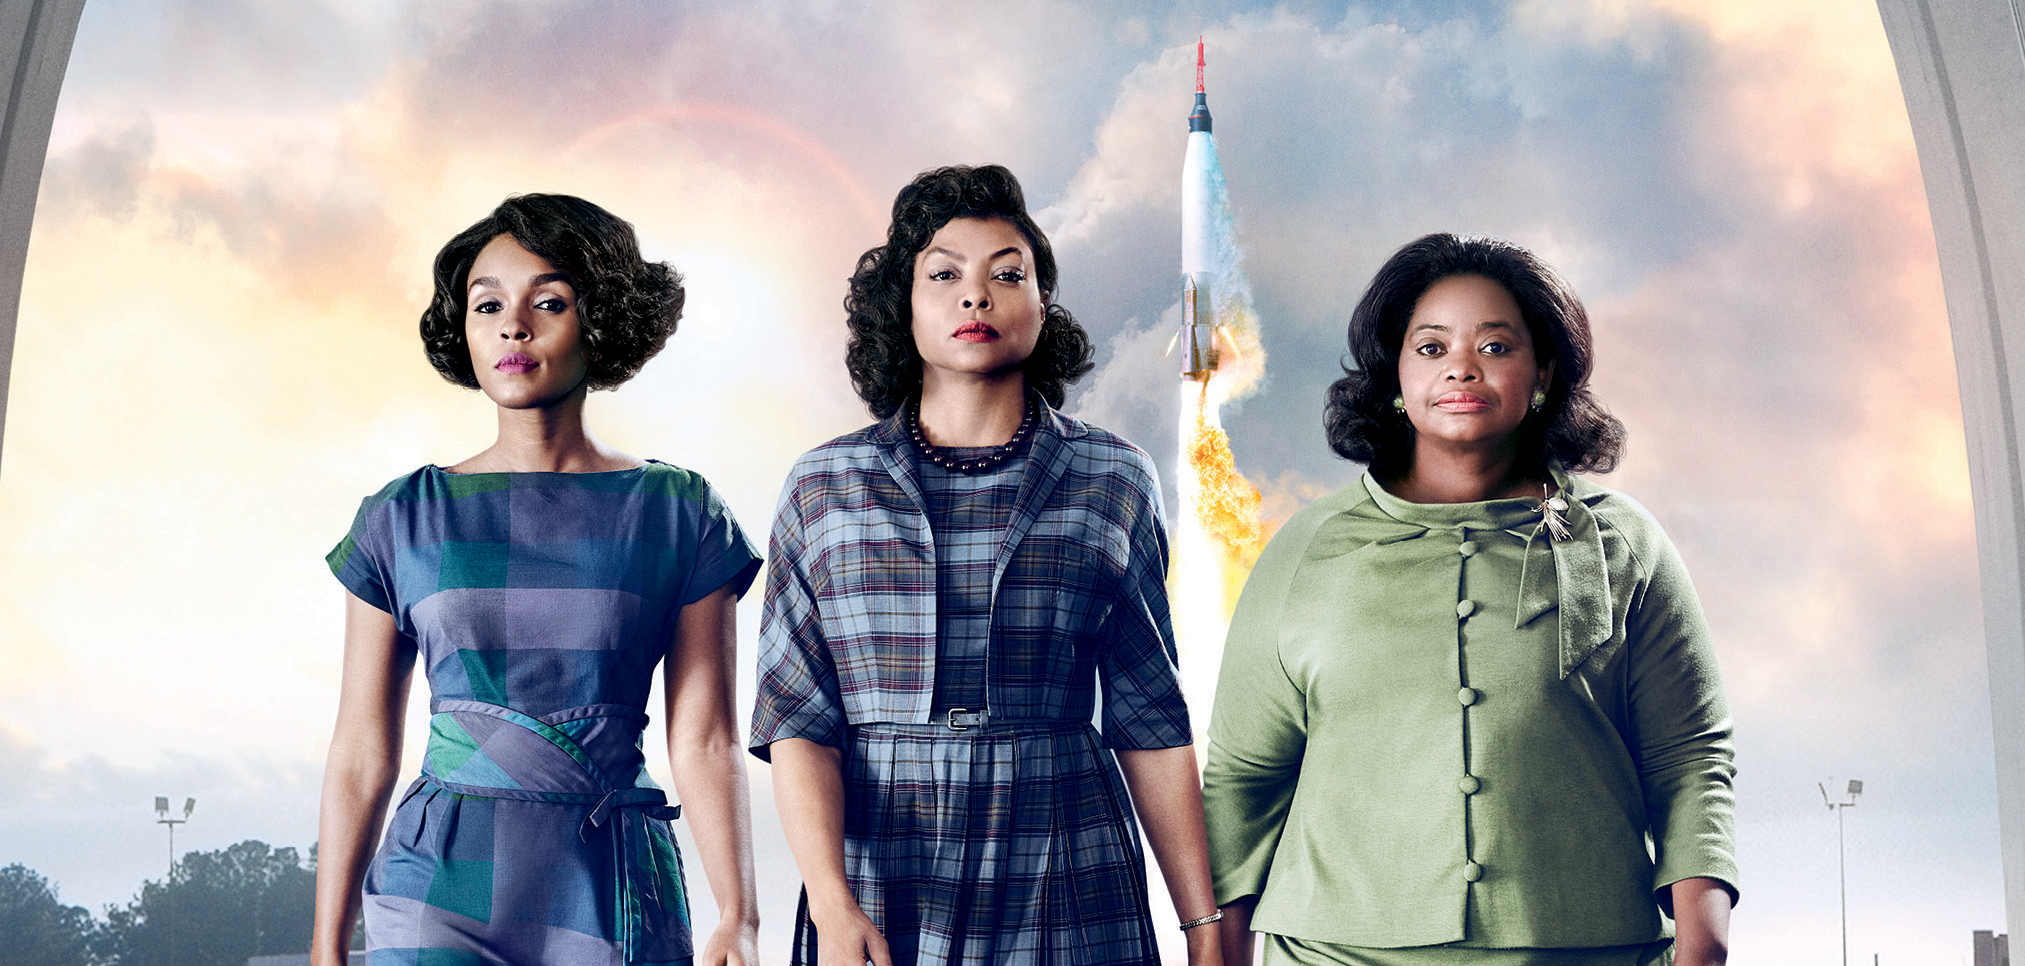 Critique Hidden Figures - un film important et réussi